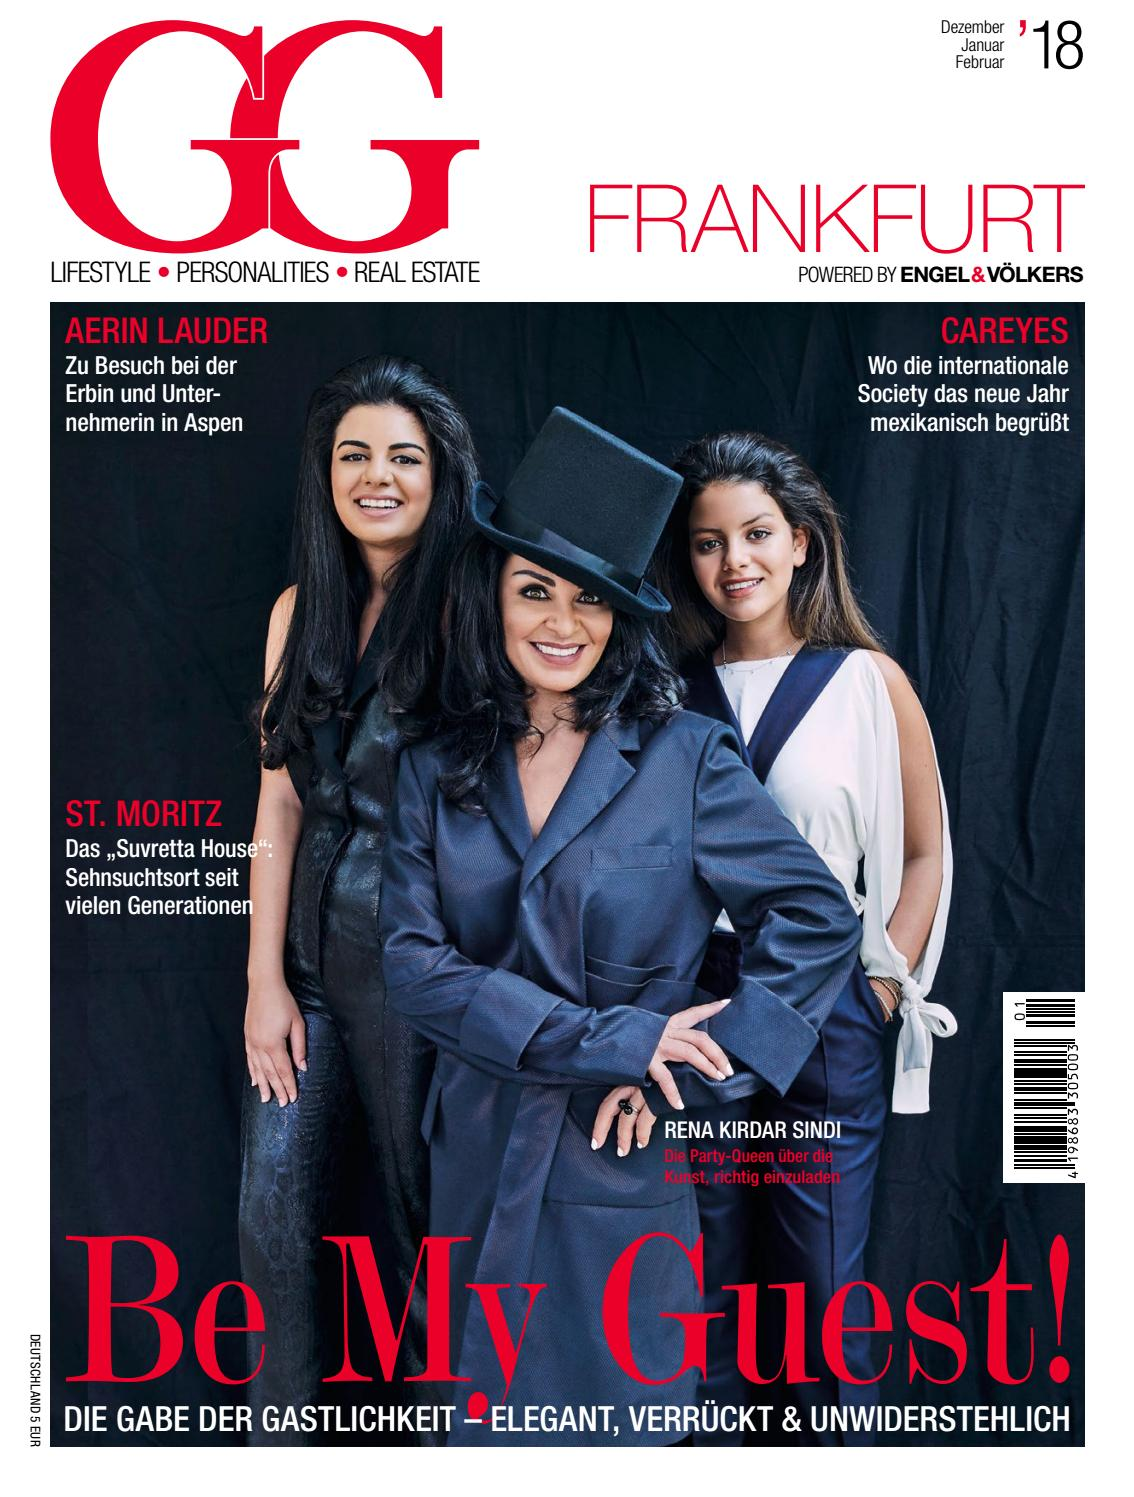 GG Magazine 01/18 Frankfurt by GG-Magazine - issuu